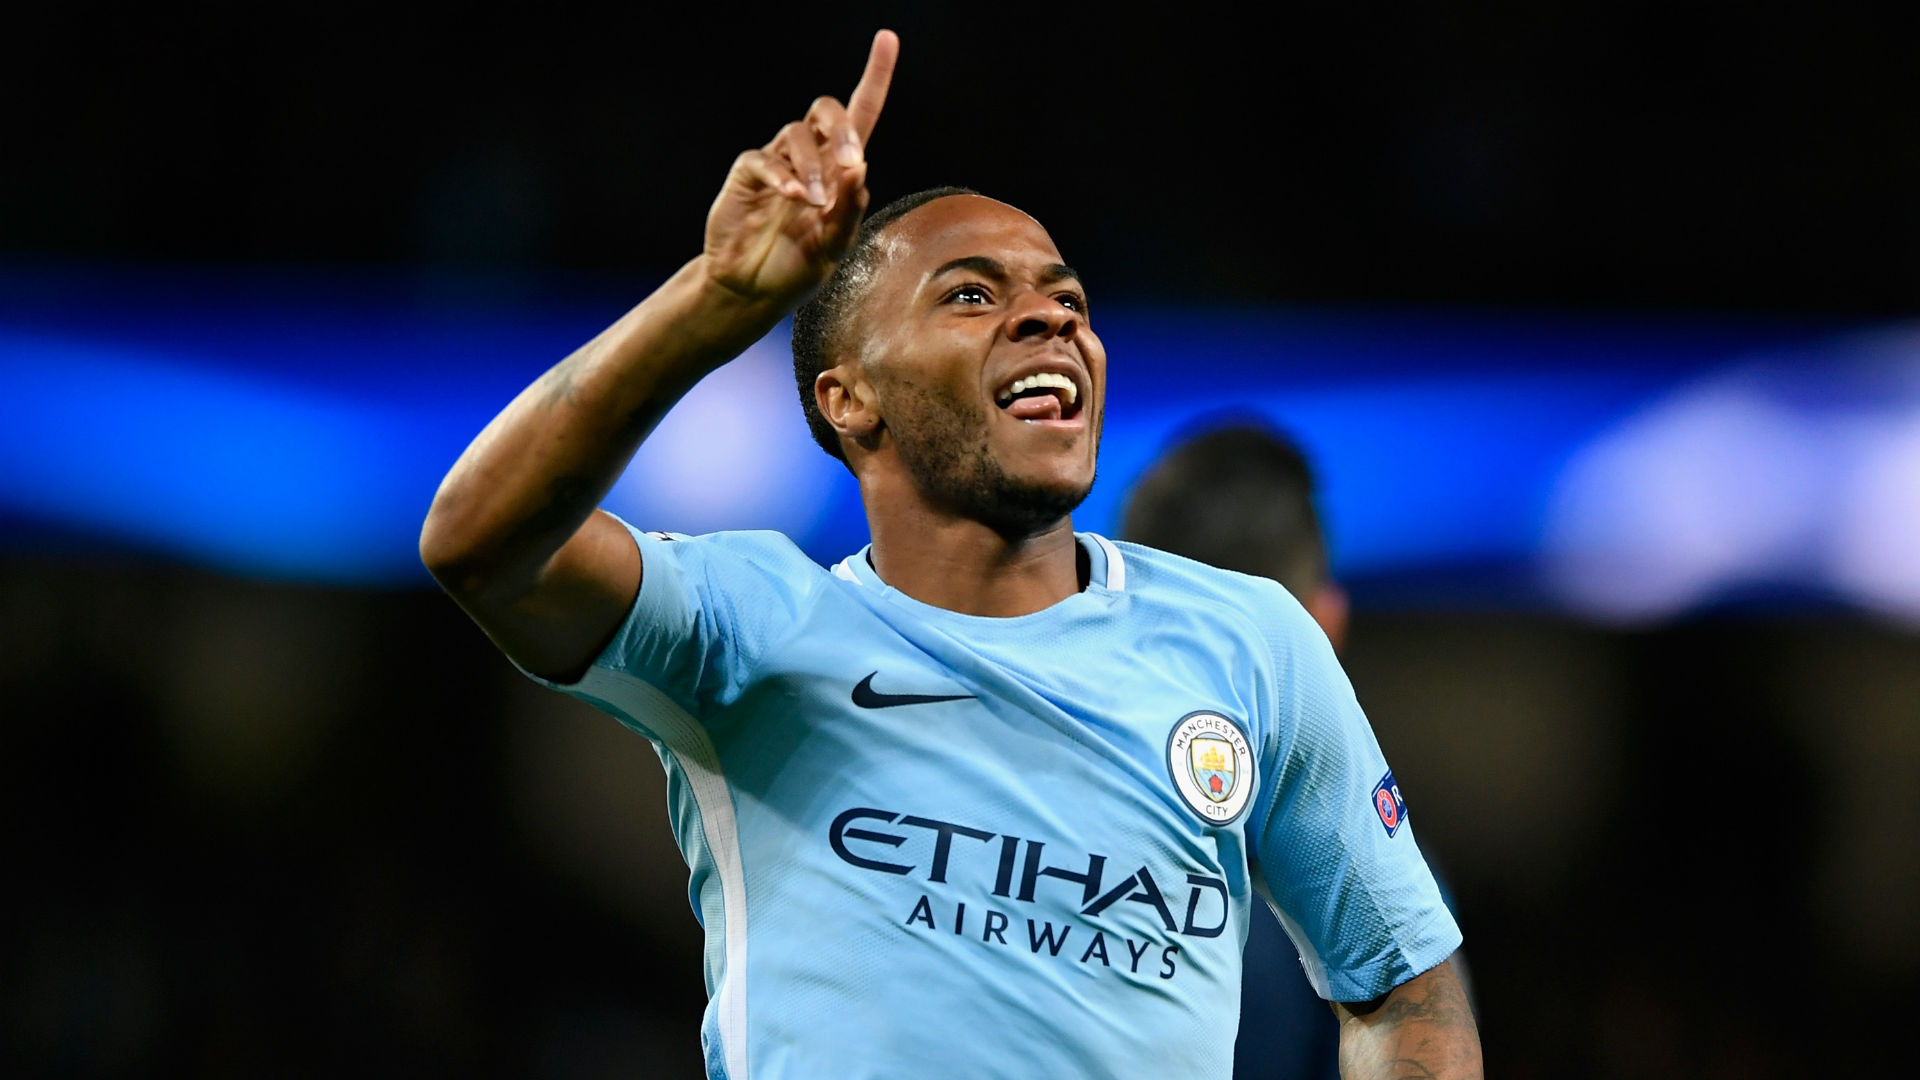 Sterling 'right' to leave Liverpool for Man City, says Nicol